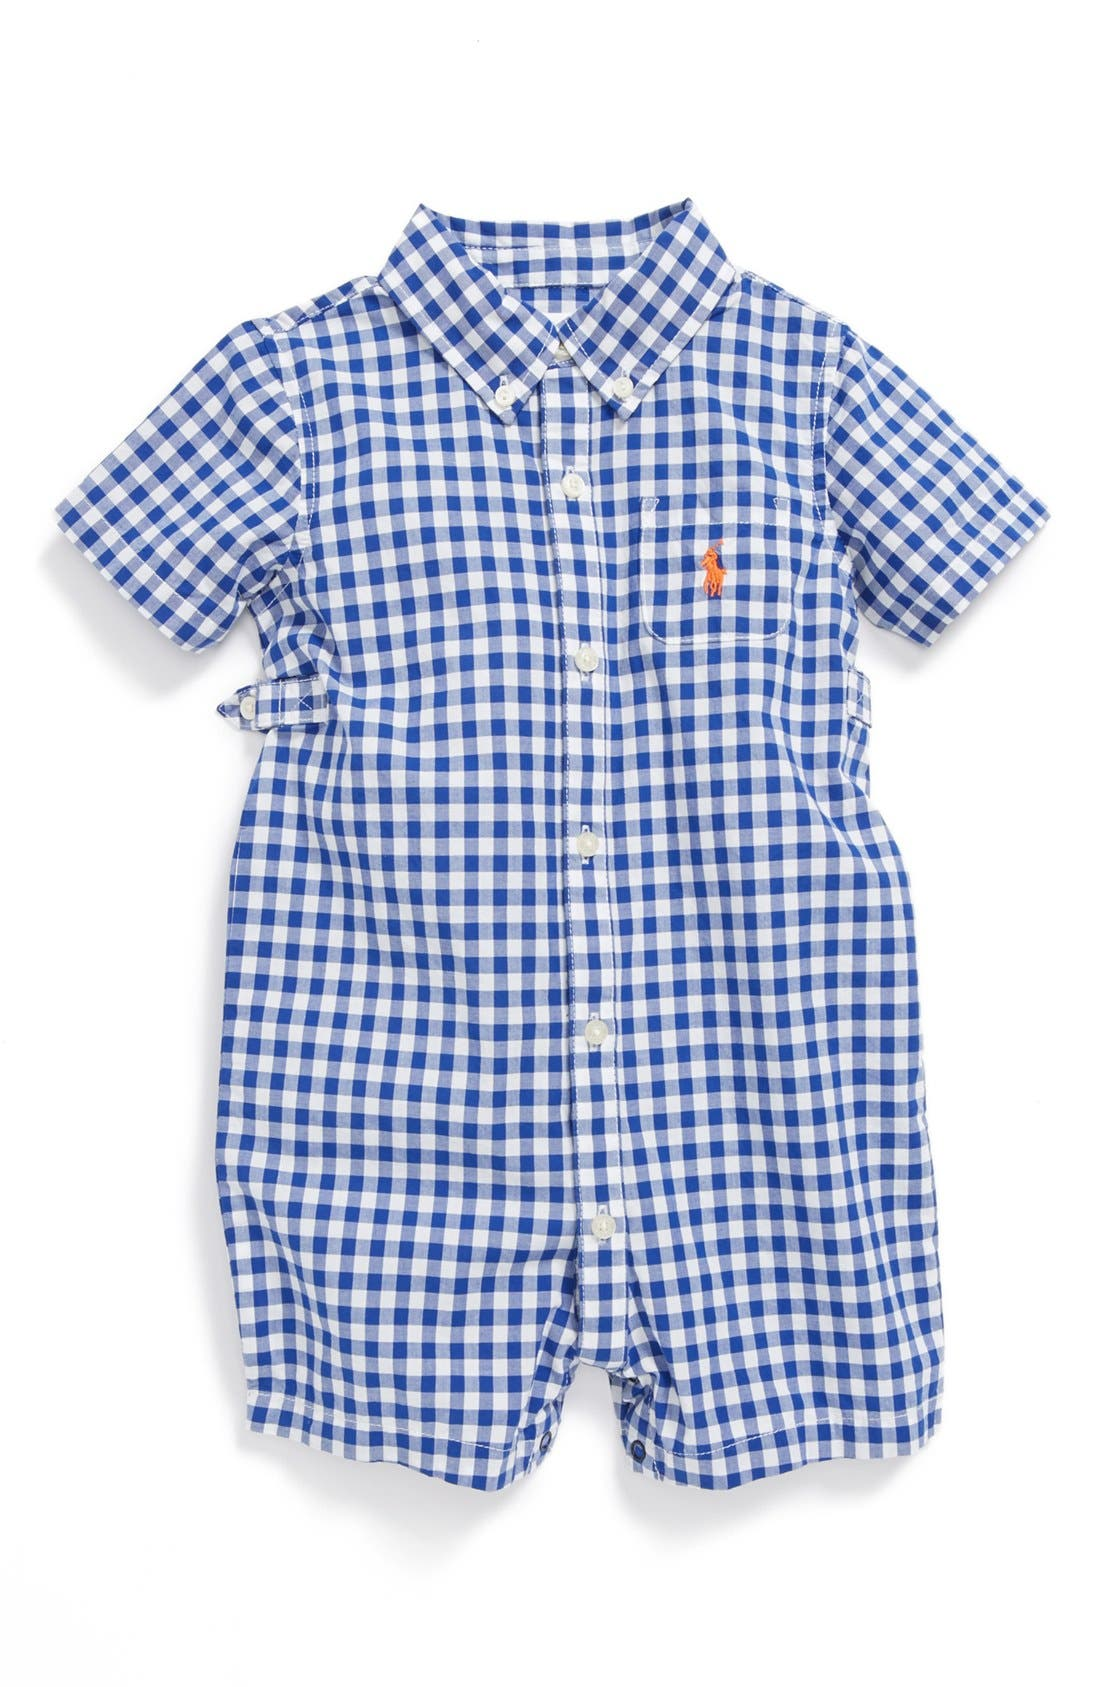 Alternate Image 1 Selected - Ralph Lauren Check Print Bodysuit (Baby)